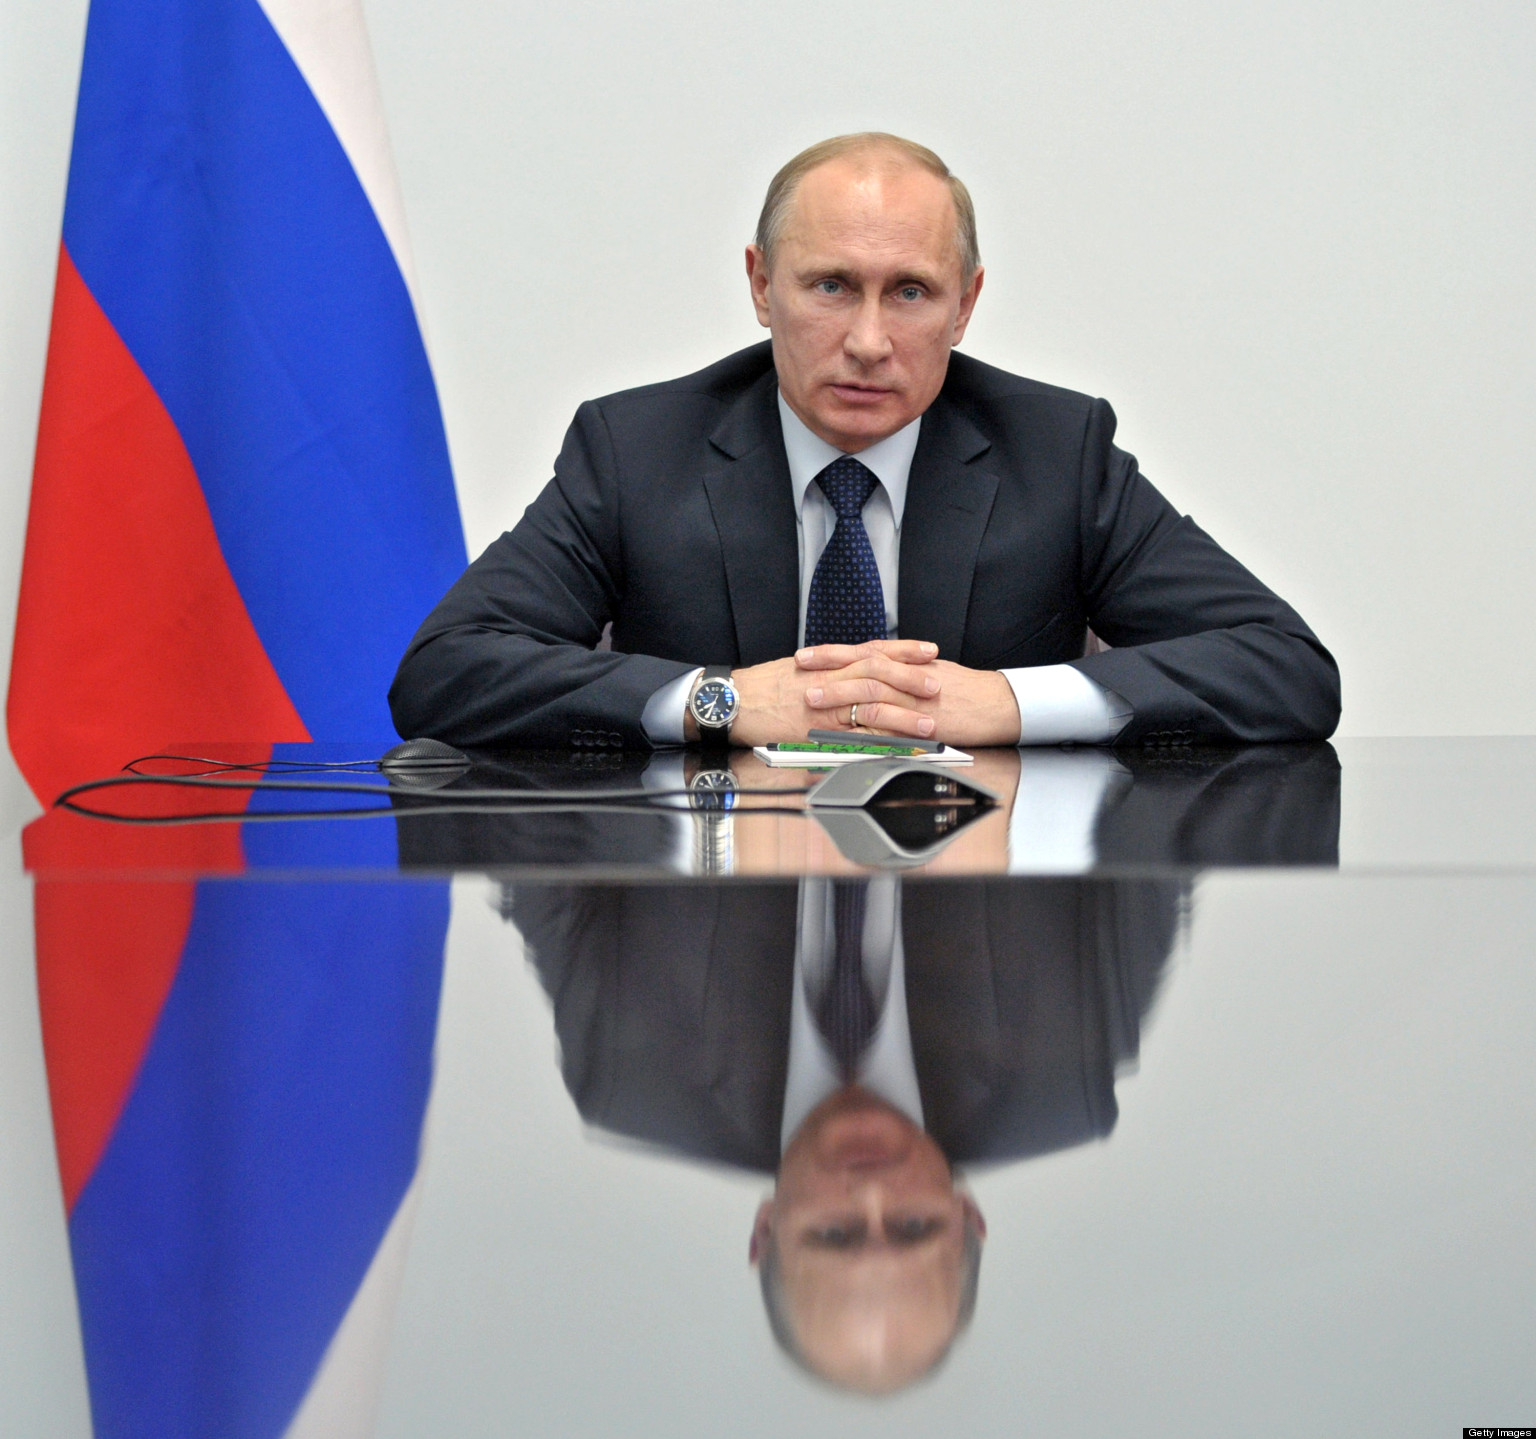 Putin: Boston Marathon Bombings A 'Disgusting' Crime